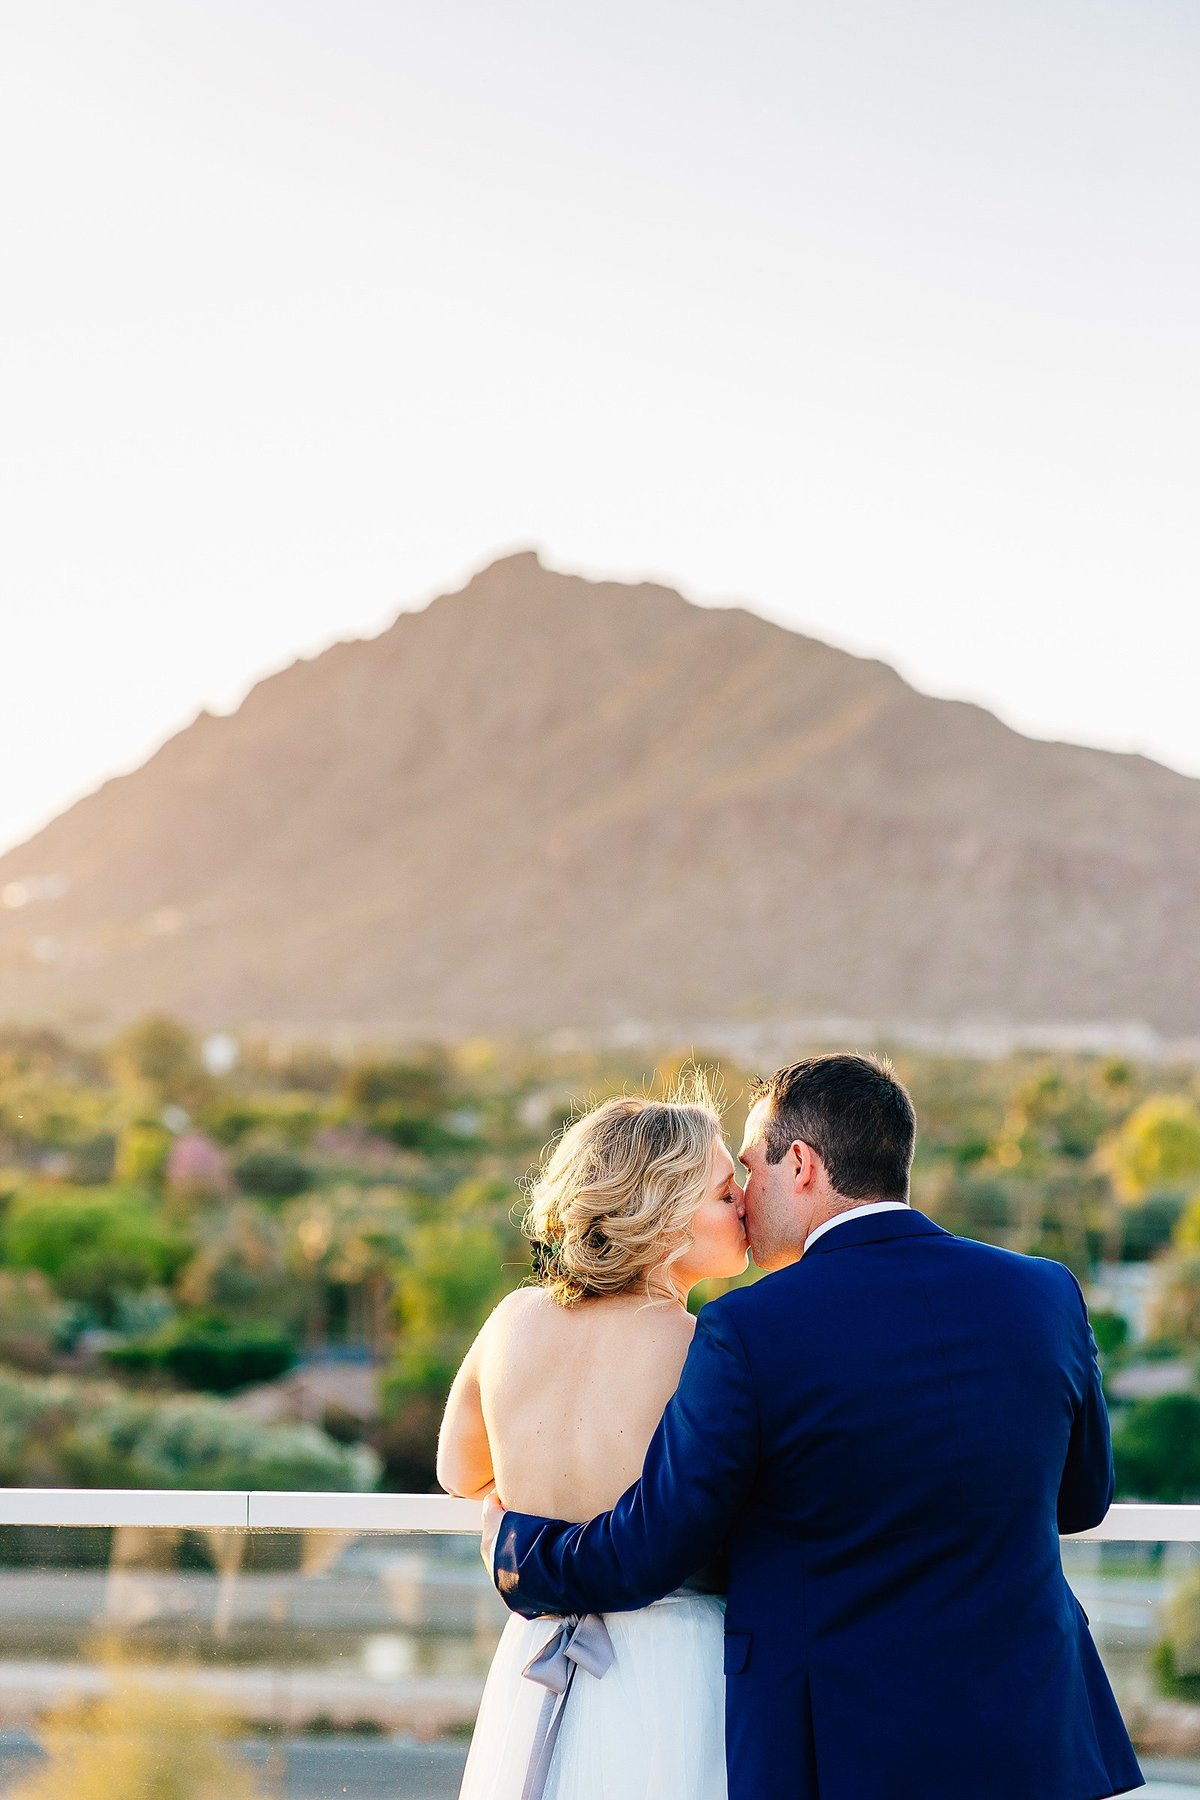 Liz + Mike - Hotel Valley Ho Wedding - Lunabear Studios - Bright and Airy Wedding Photography_0151